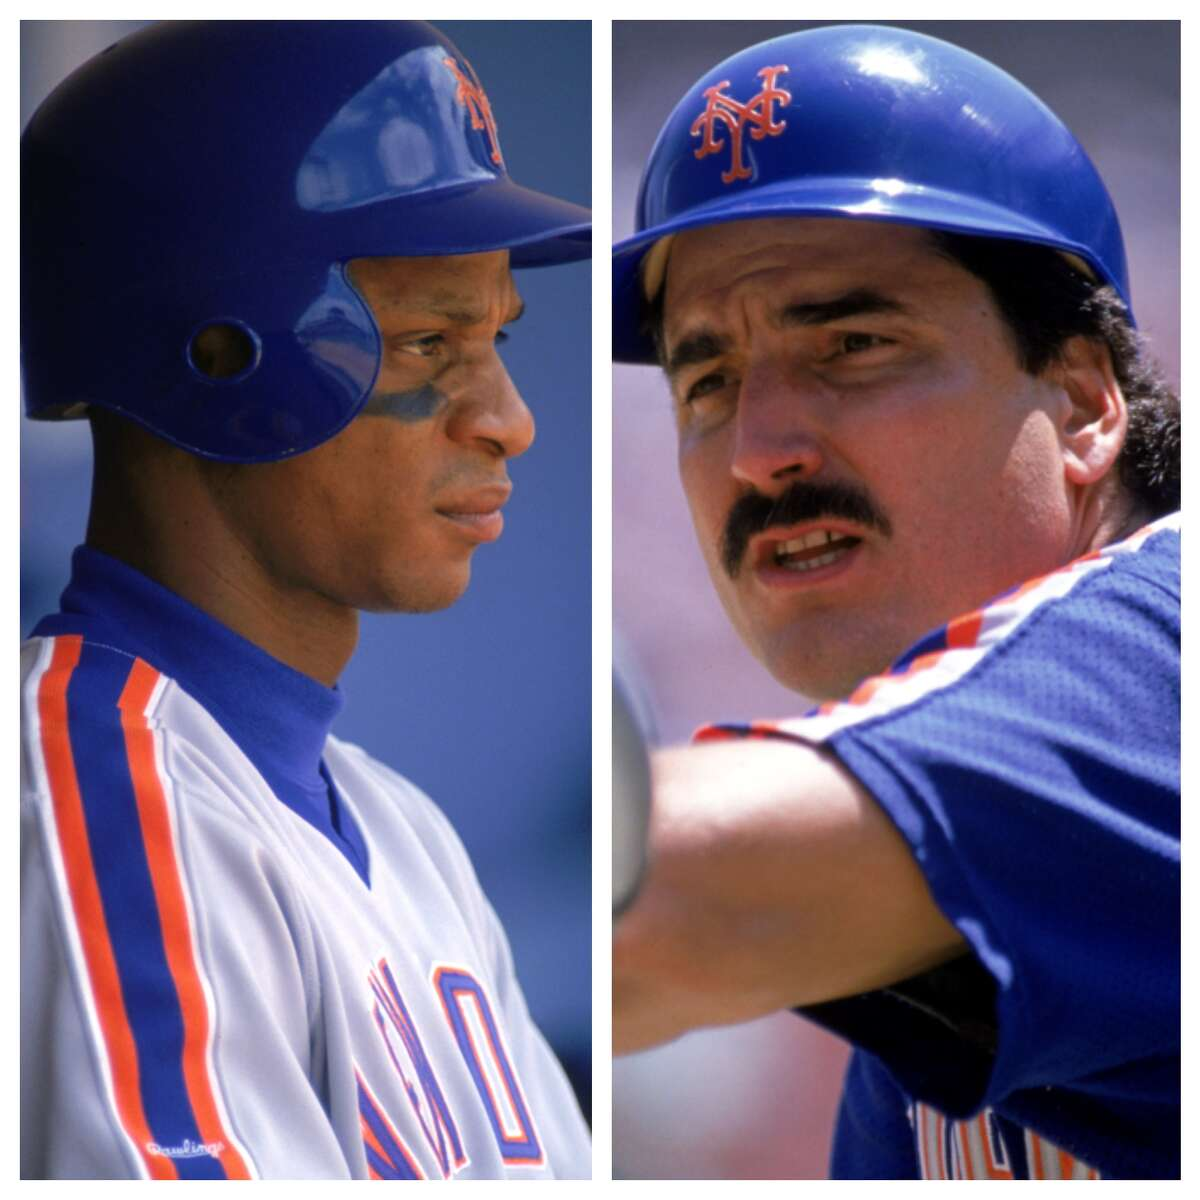 """Darryl Strawberry vs. Keith Hernandez In Spring Training of 1989, Darryl Strawberry was being advised by his agent to walk out of camp because of a contract dispute. When the Mets gathered for a team photo, Hernandez said something about it, and Strawberry took a swing at Hernandez. """"I have been tired of you for years,"""" Strawberry shouted at Hernandez, trying to break loose from Gary Carter`s grip. """"Don`t hold him back."""" Two hours later, Strawberry walked out of camp. After the skirmish - which can be seen here - Carter joked, """"Let's take another picture."""""""